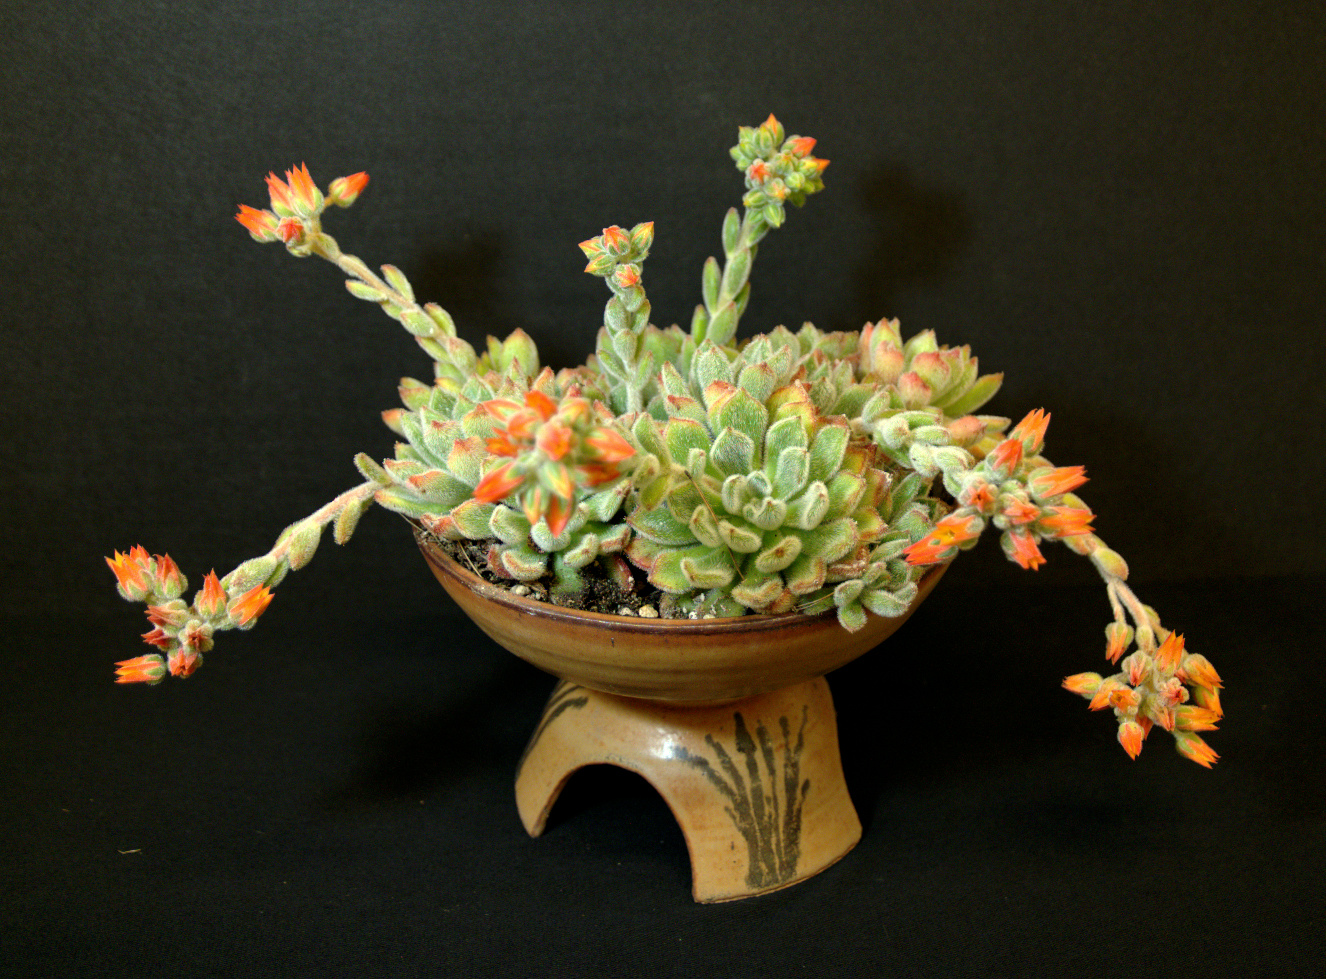 SCCSS 2016 June - Winner Novice Succulent - Mike Short - Echeveria 'Doris Taylor'